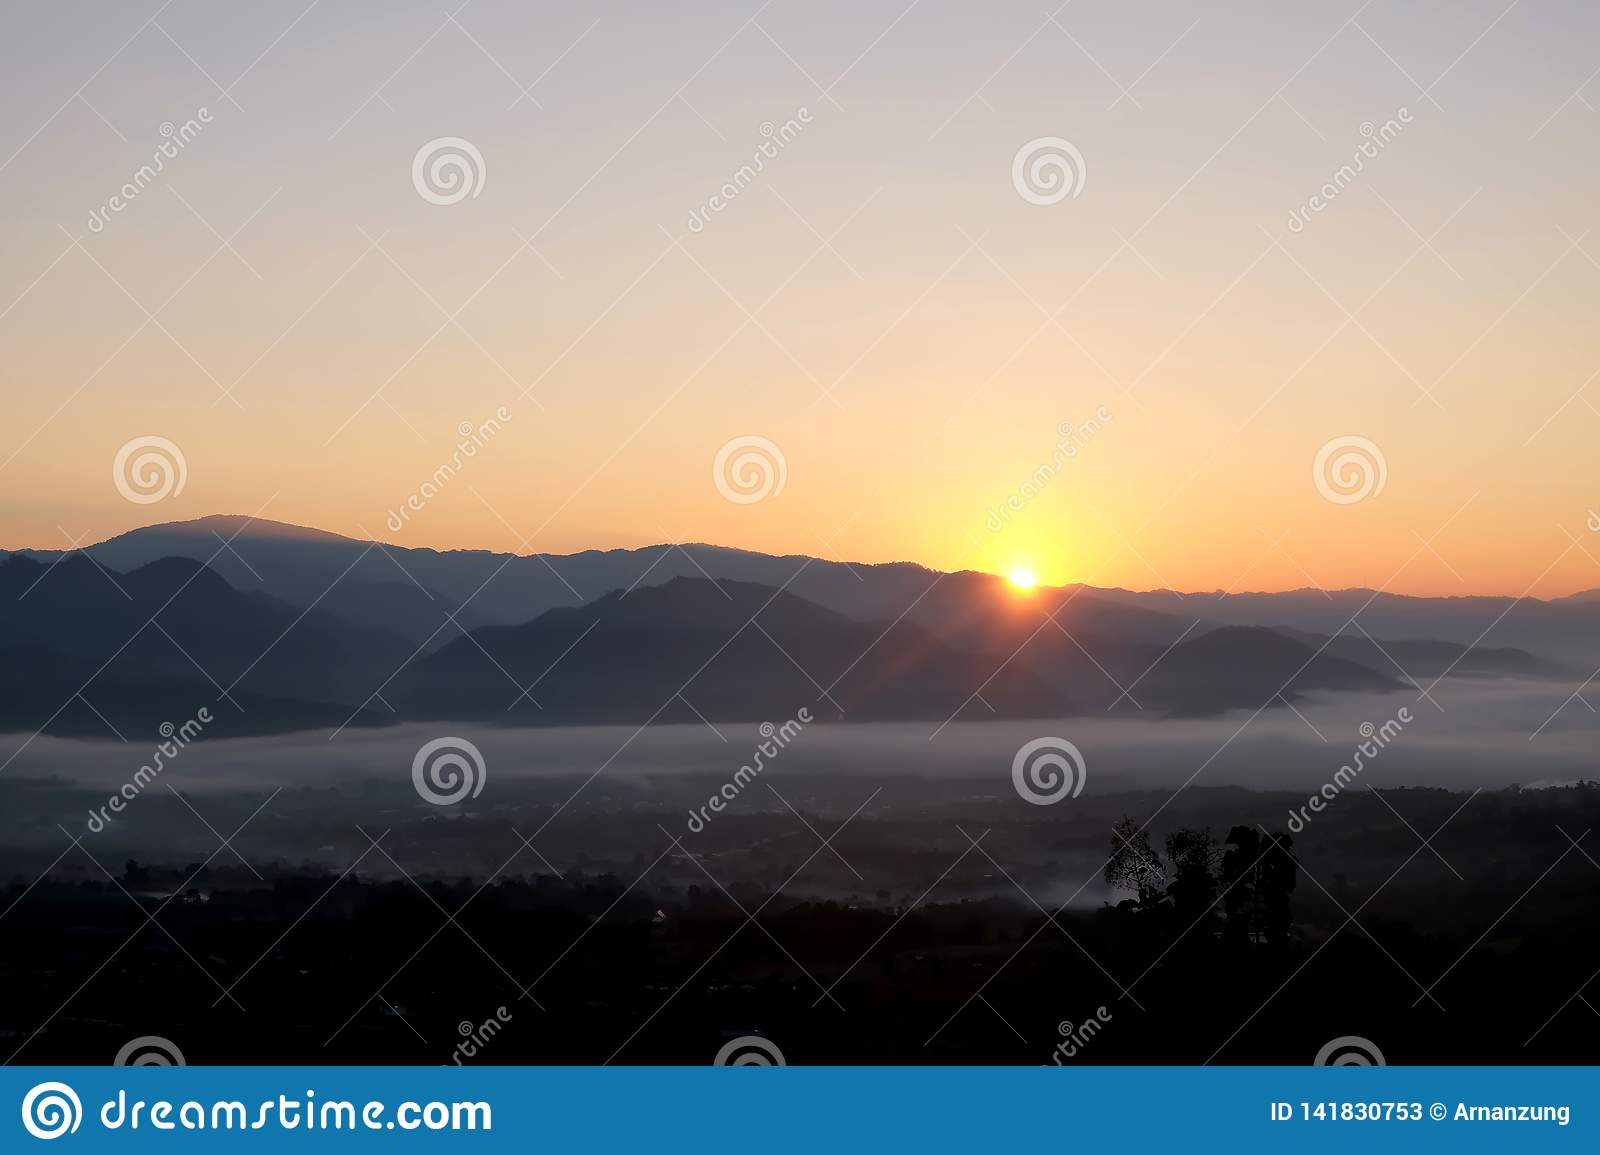 Sunrise behind mountain in the morning with magnificent mist landscape in winter season.